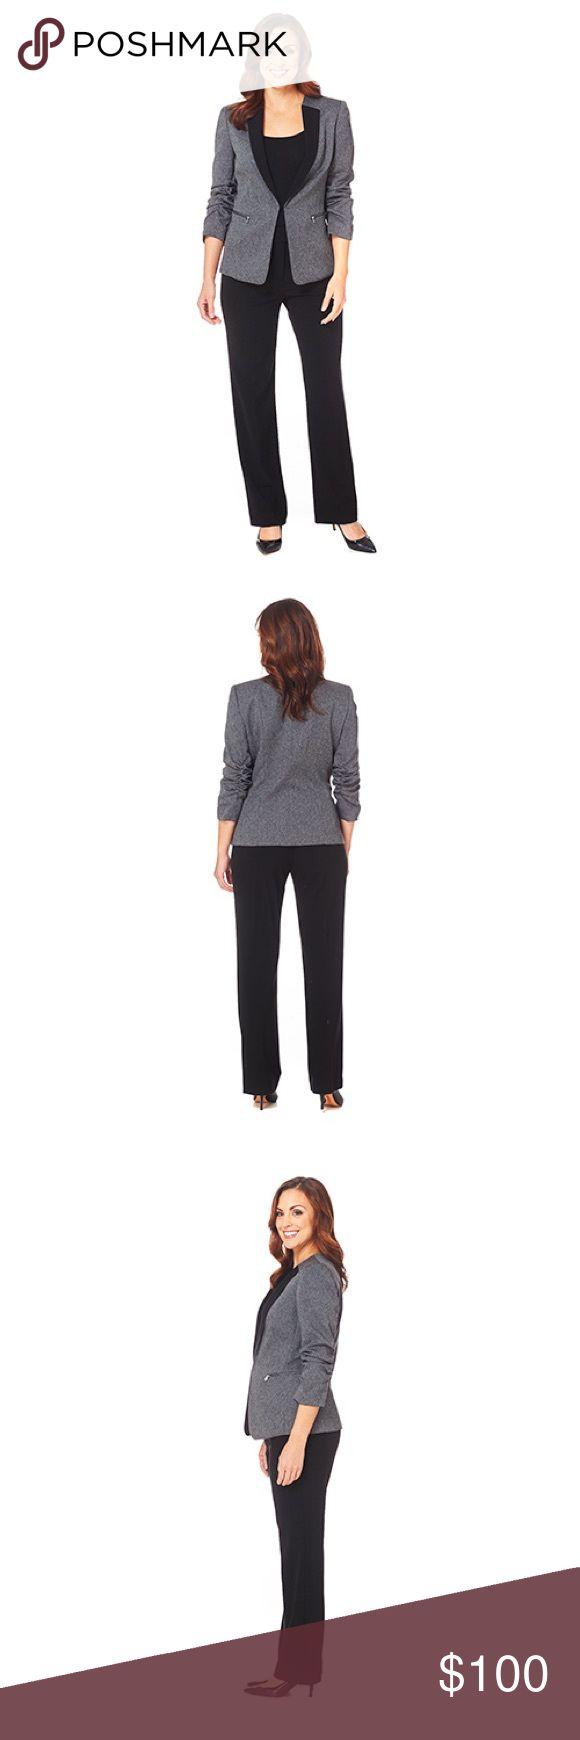 Tahari herringbone jacket and plain paint suit nwt A fully lined herringbone jacket is paired with a pair of monochromatic pants. Contrast trim further enhances the jacket. Dry clean. Imported. Tahari Jackets & Coats Blazers